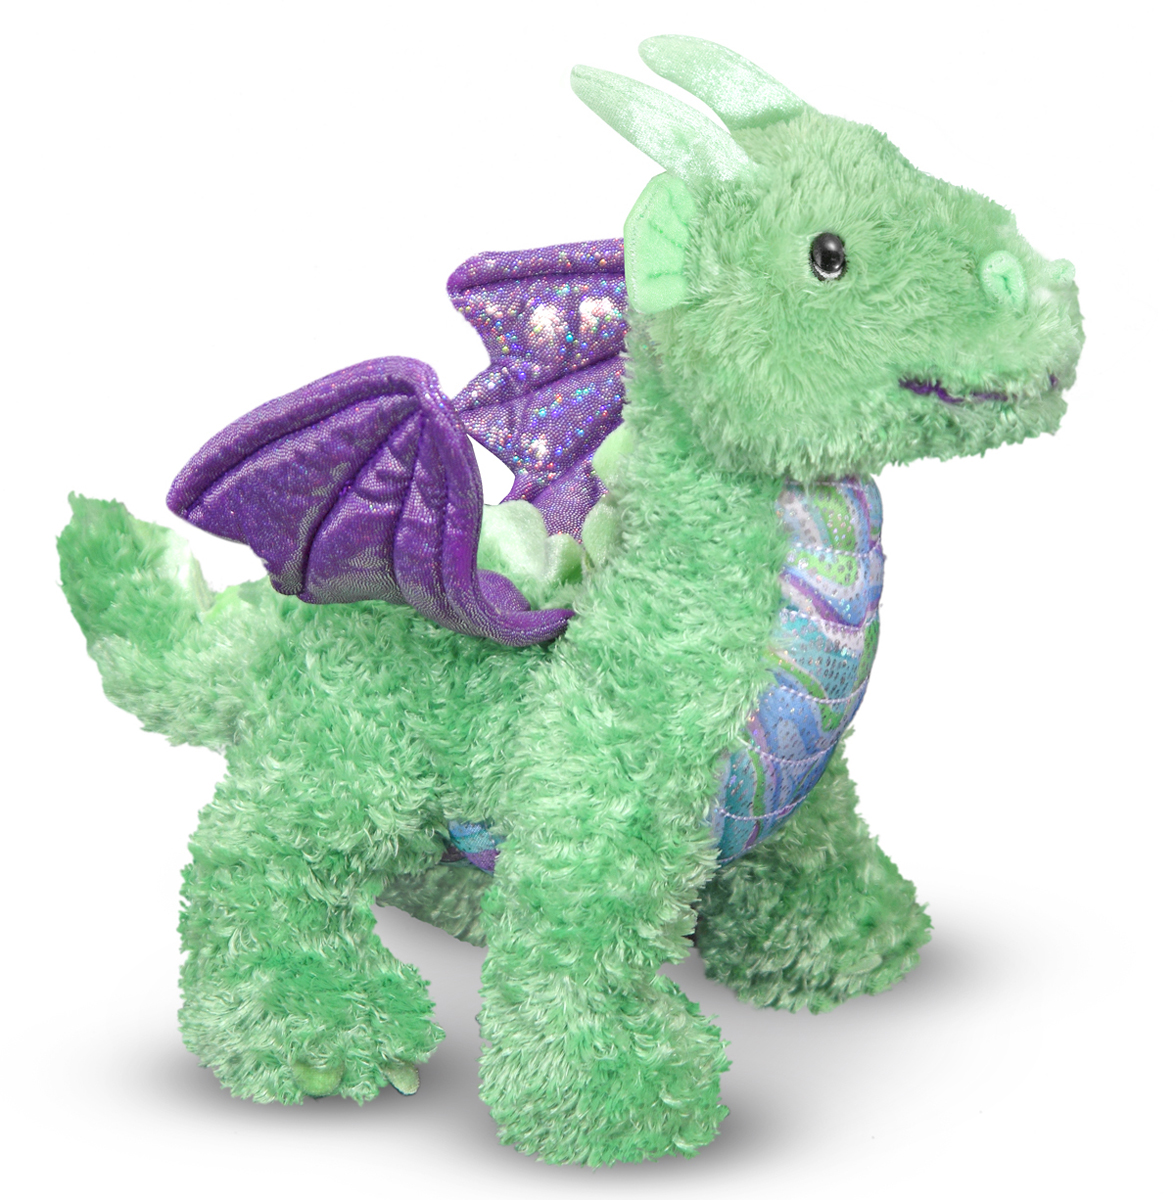 Melissa and Doug - Zephyr Green Dragon Stuffed Animal